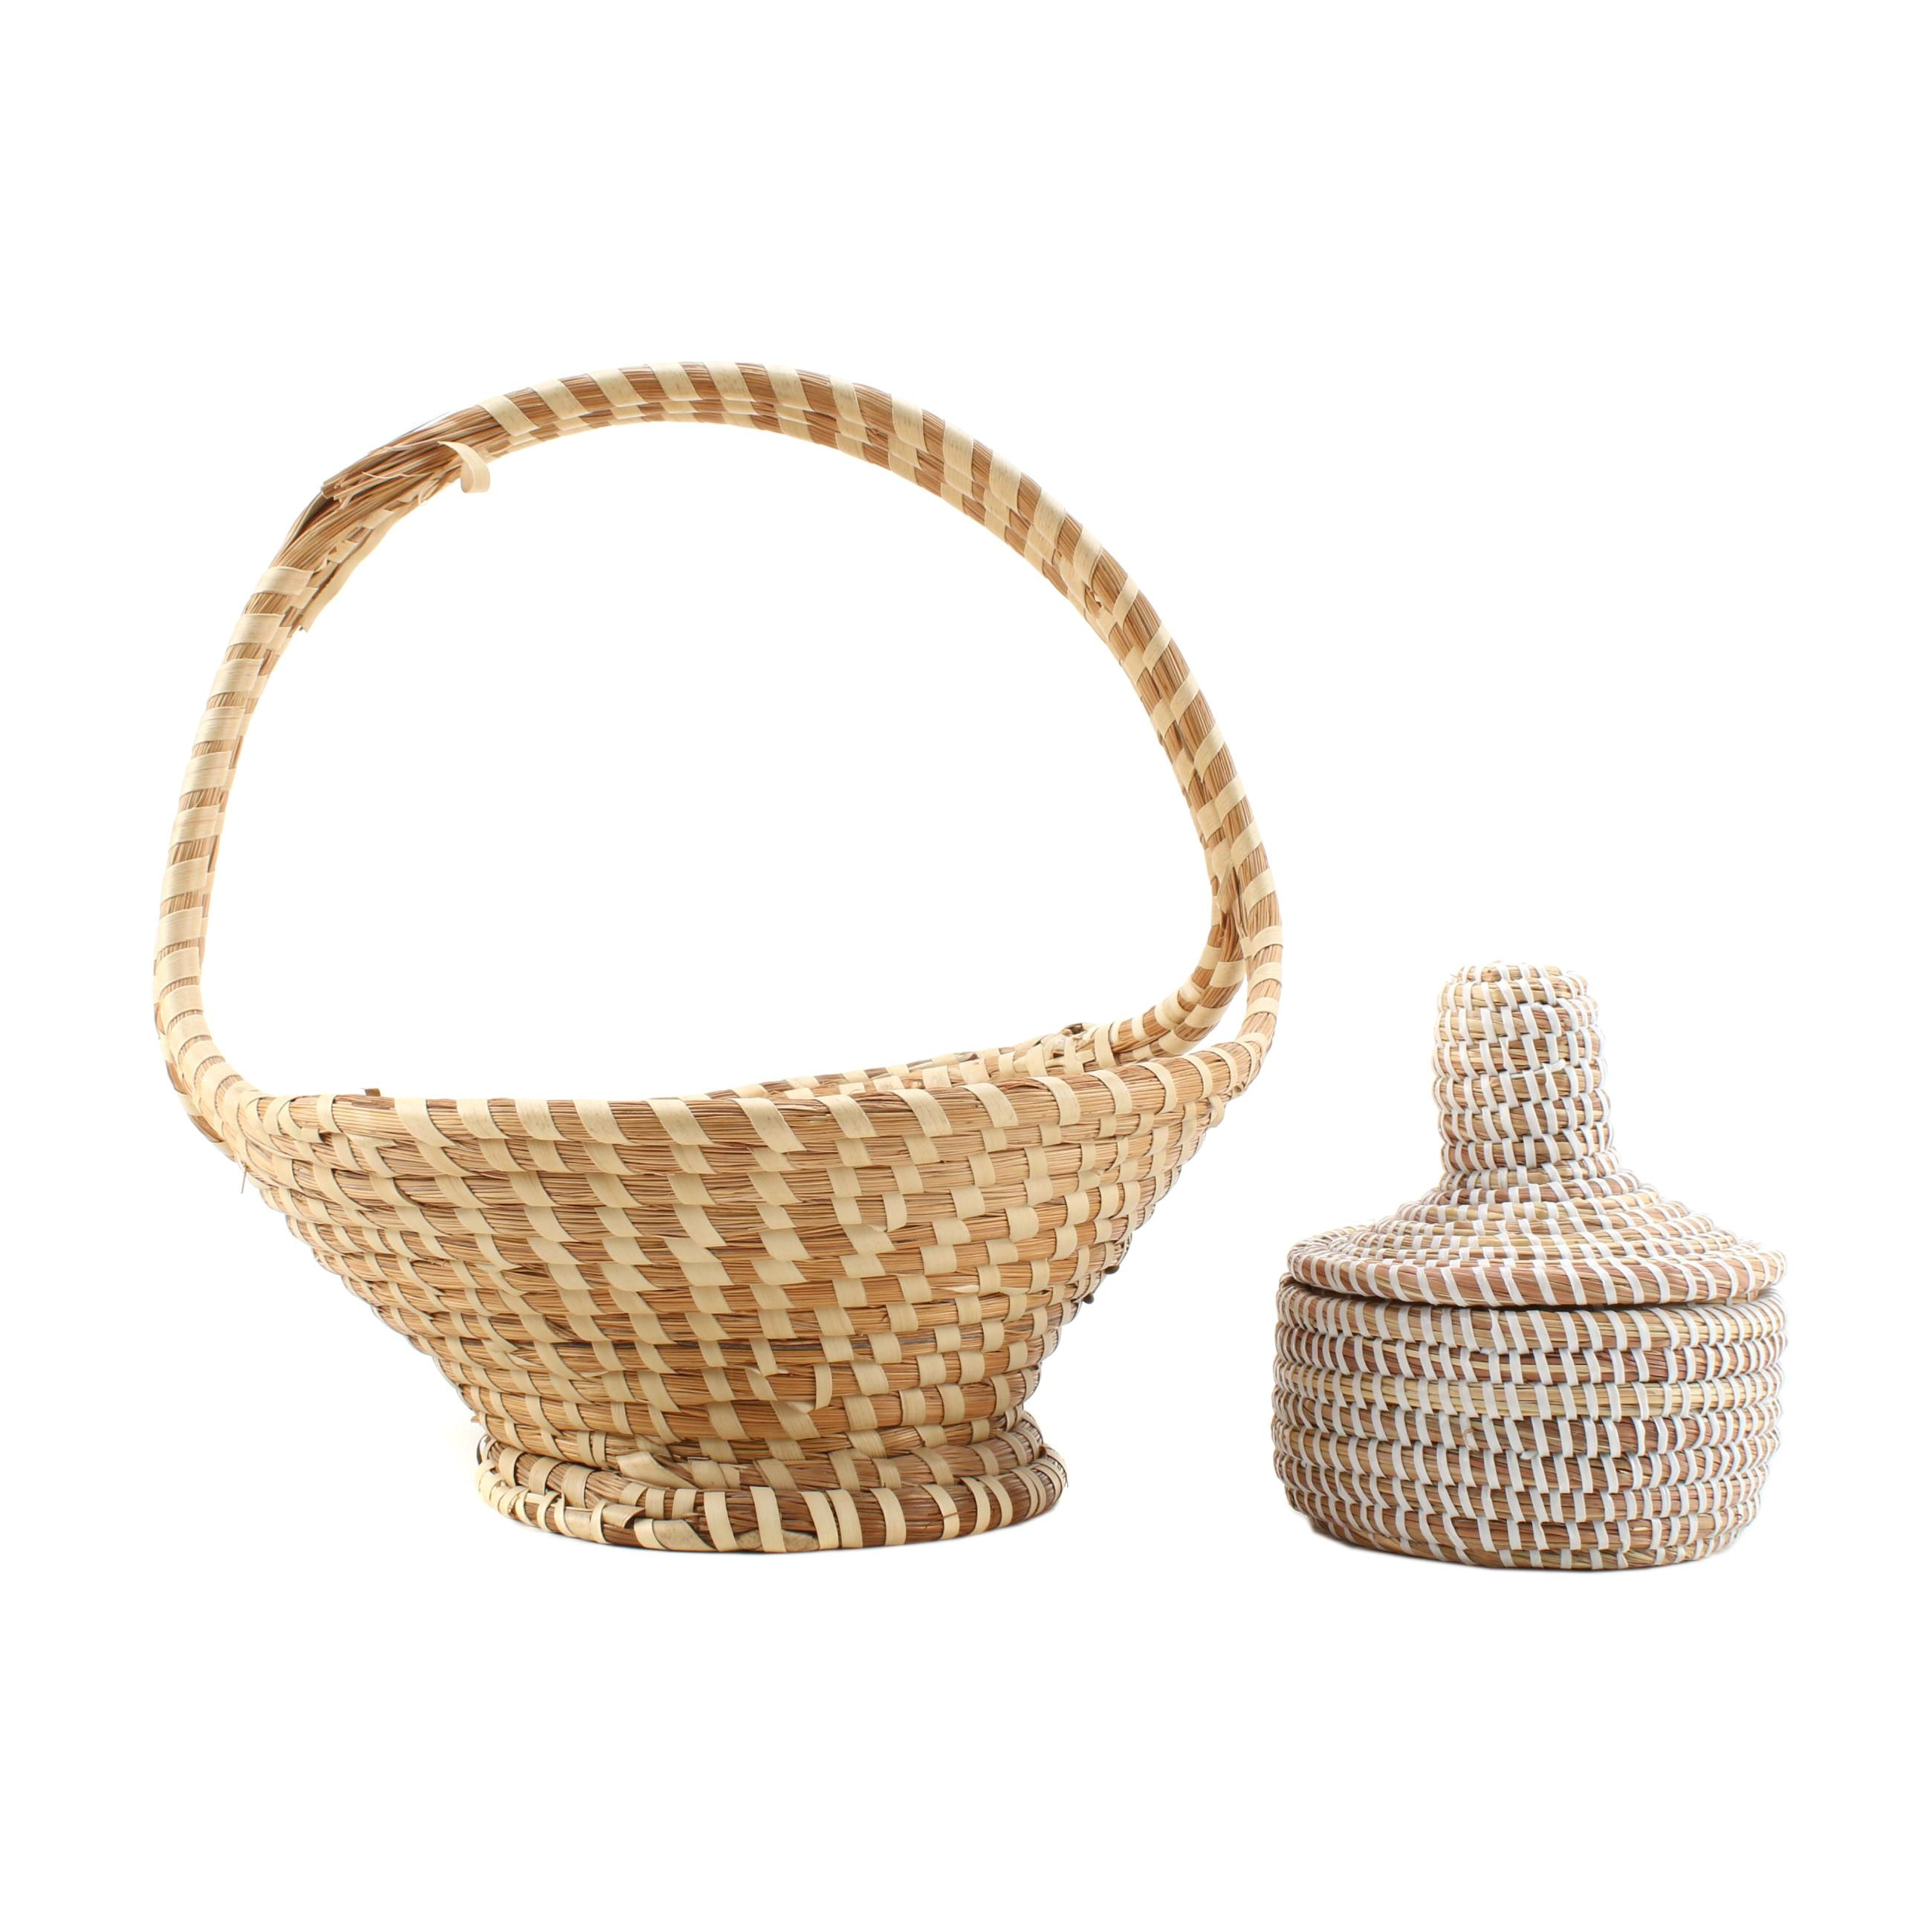 Woven Handled Flower Basket and Woven Lidded Basket